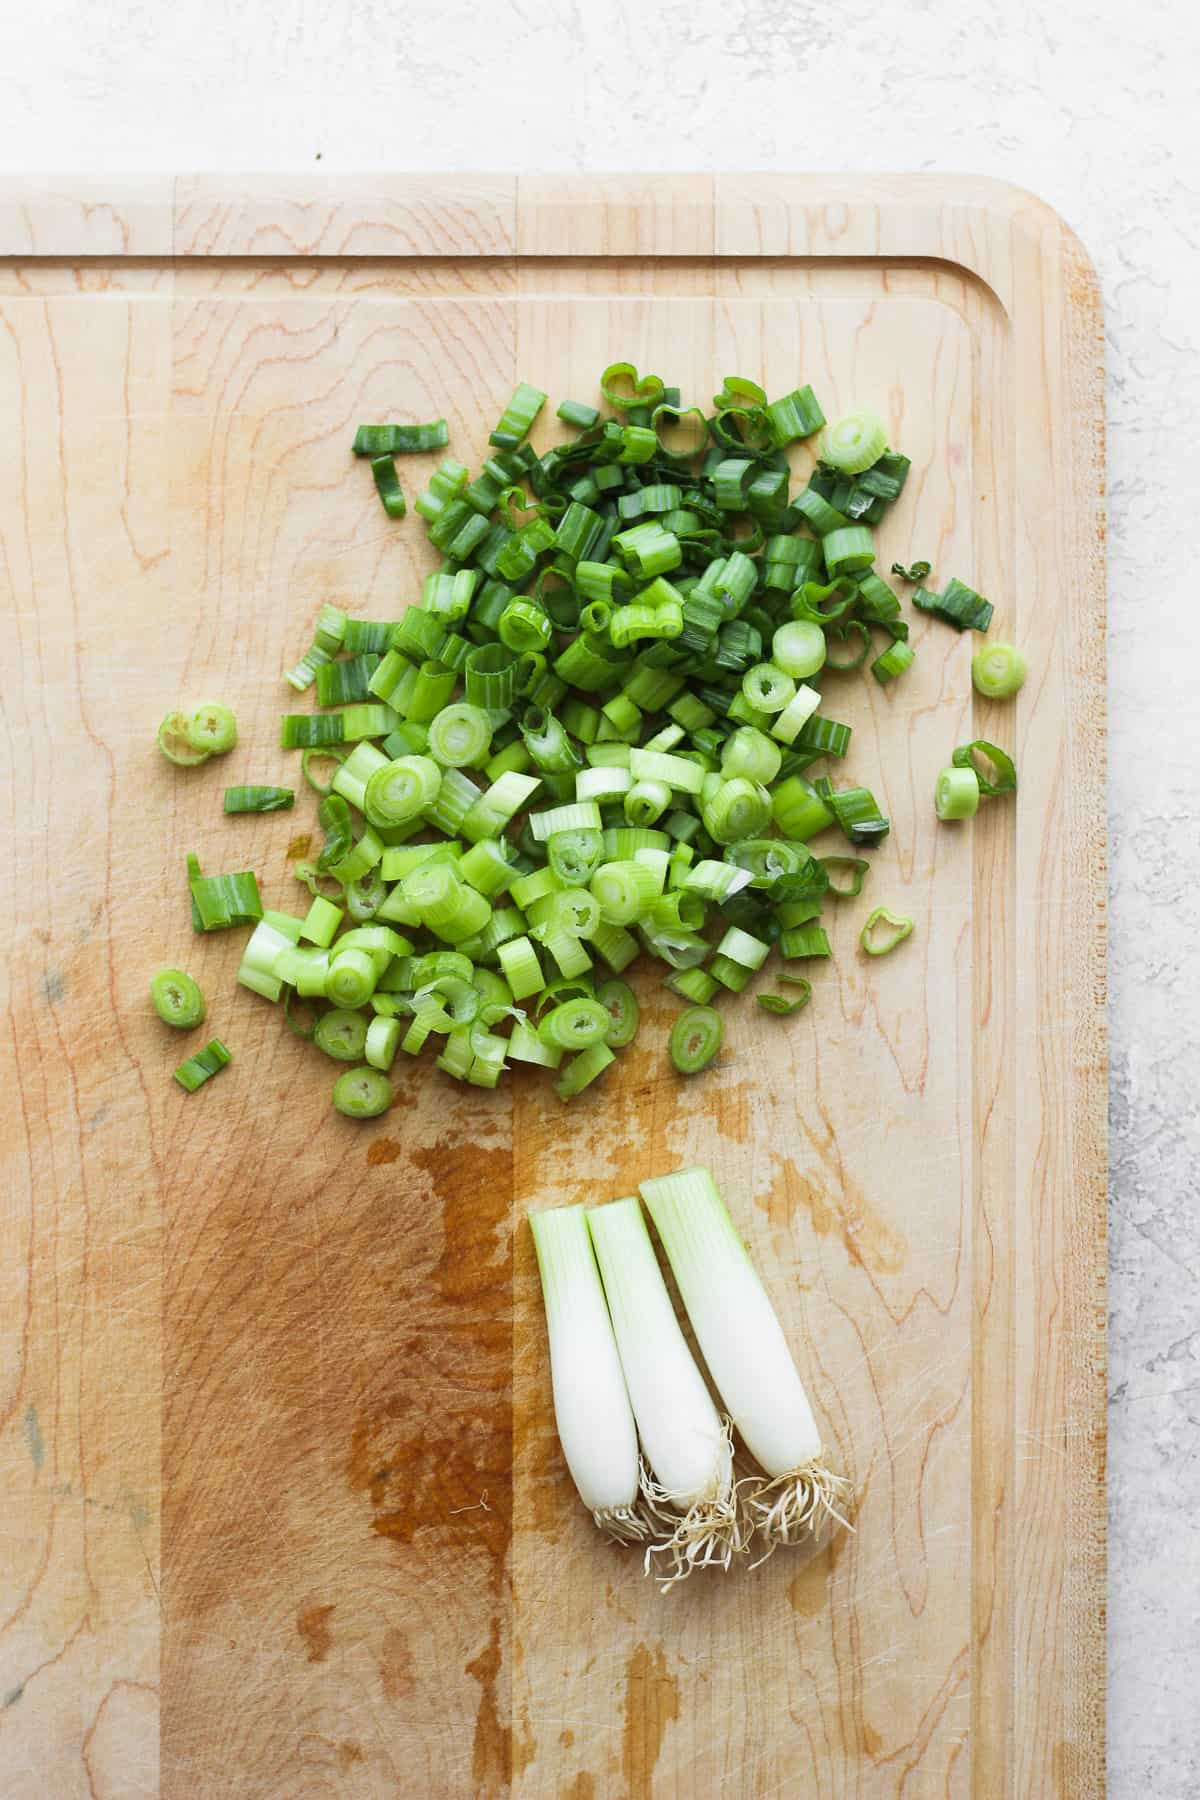 Chopped green onions - greens separated from whites